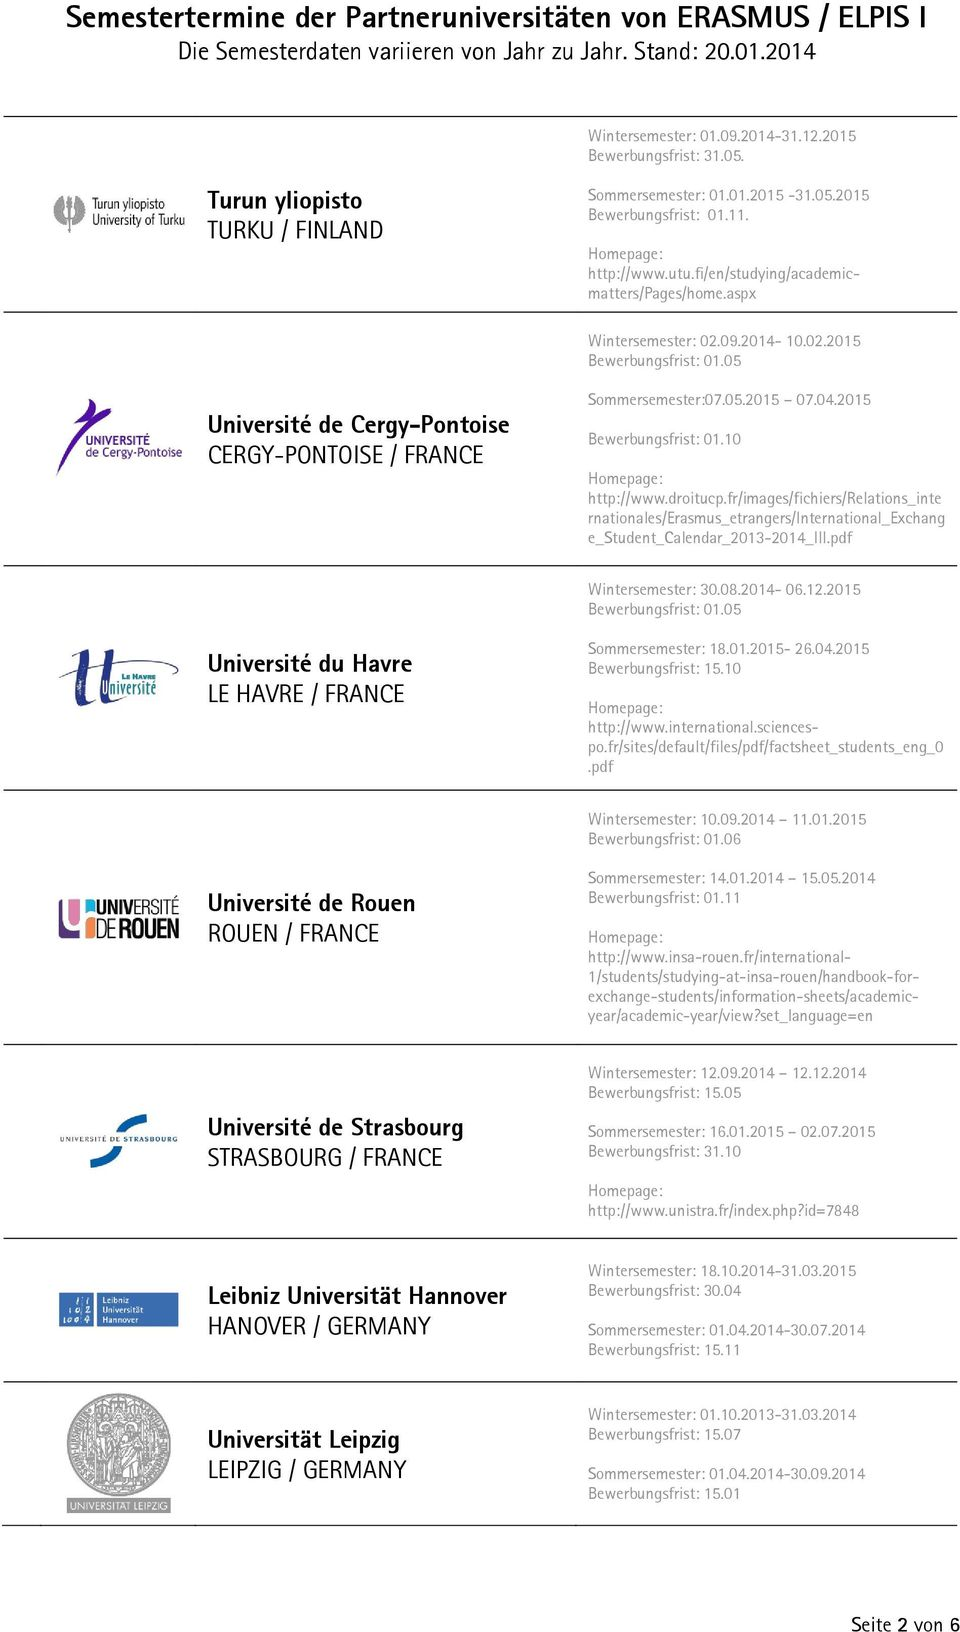 fr/images/fichiers/relations_inte rnationales/erasmus_etrangers/international_exchang e_student_calendar_2013-2014_iii.pdf Wintersemester: 30.08.2014-06.12.2015 01.